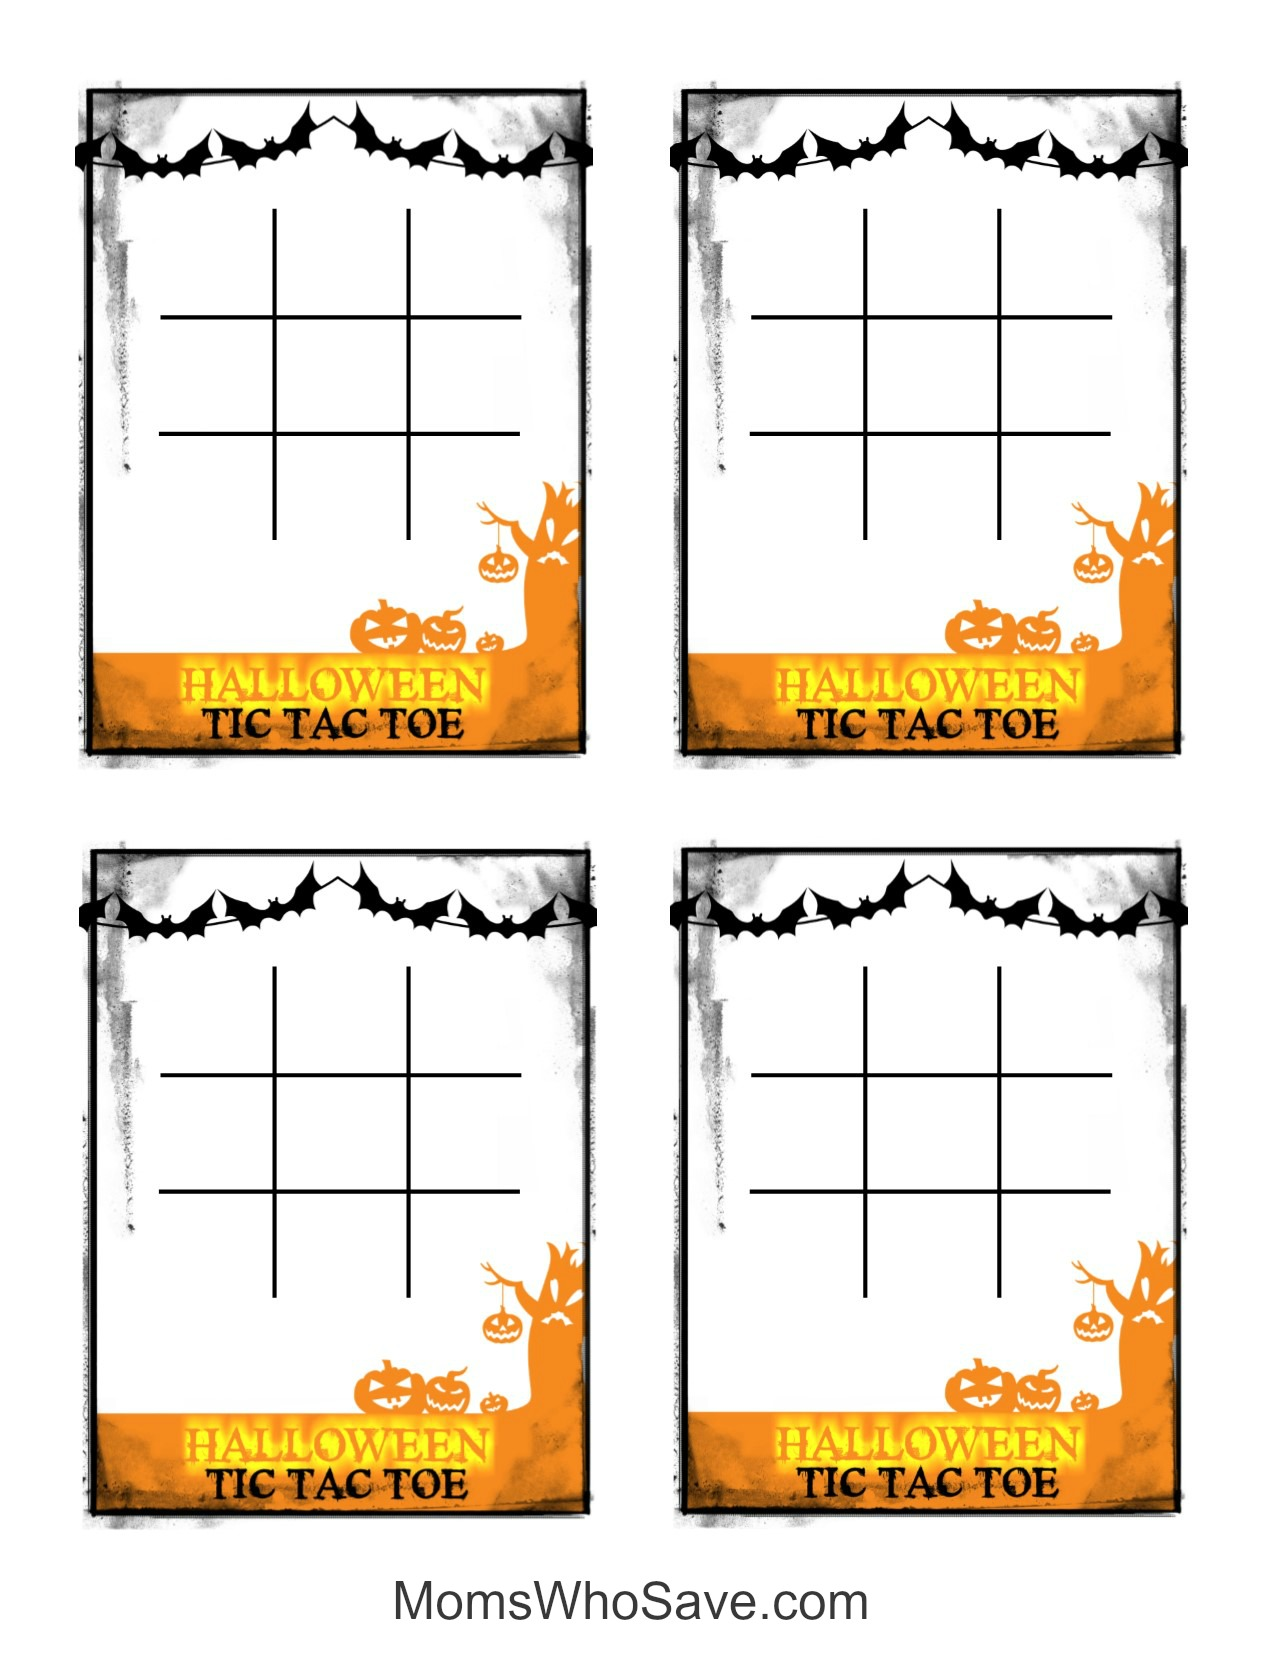 photo regarding Tic Tac Toe Board Printable referred to as Totally free Halloween Tic Tac Toe Printable Video game Playing cards